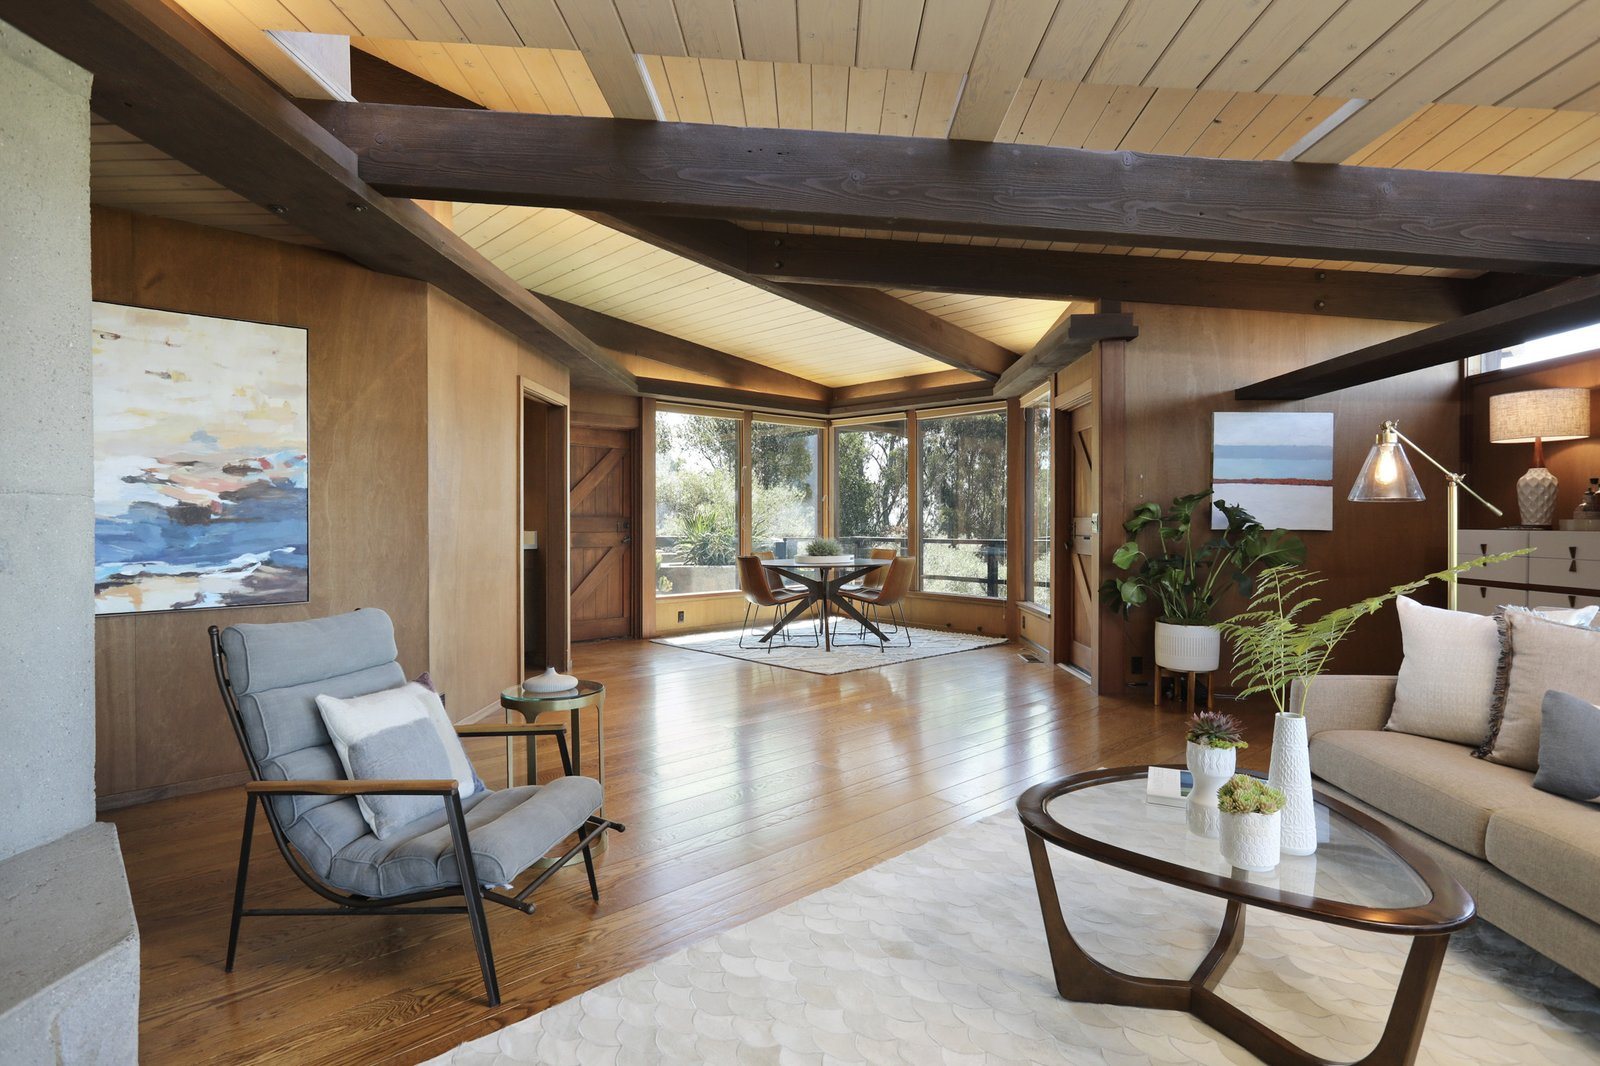 Throughout the interior, wood-paneled walls, hardwood floors,  and tongue-and-groove ceilings complement the post-and-beam design.  Photo 5 of 19 in An Alluring Berkeley Hills Home by a Case Study Architect Asks $2.9M